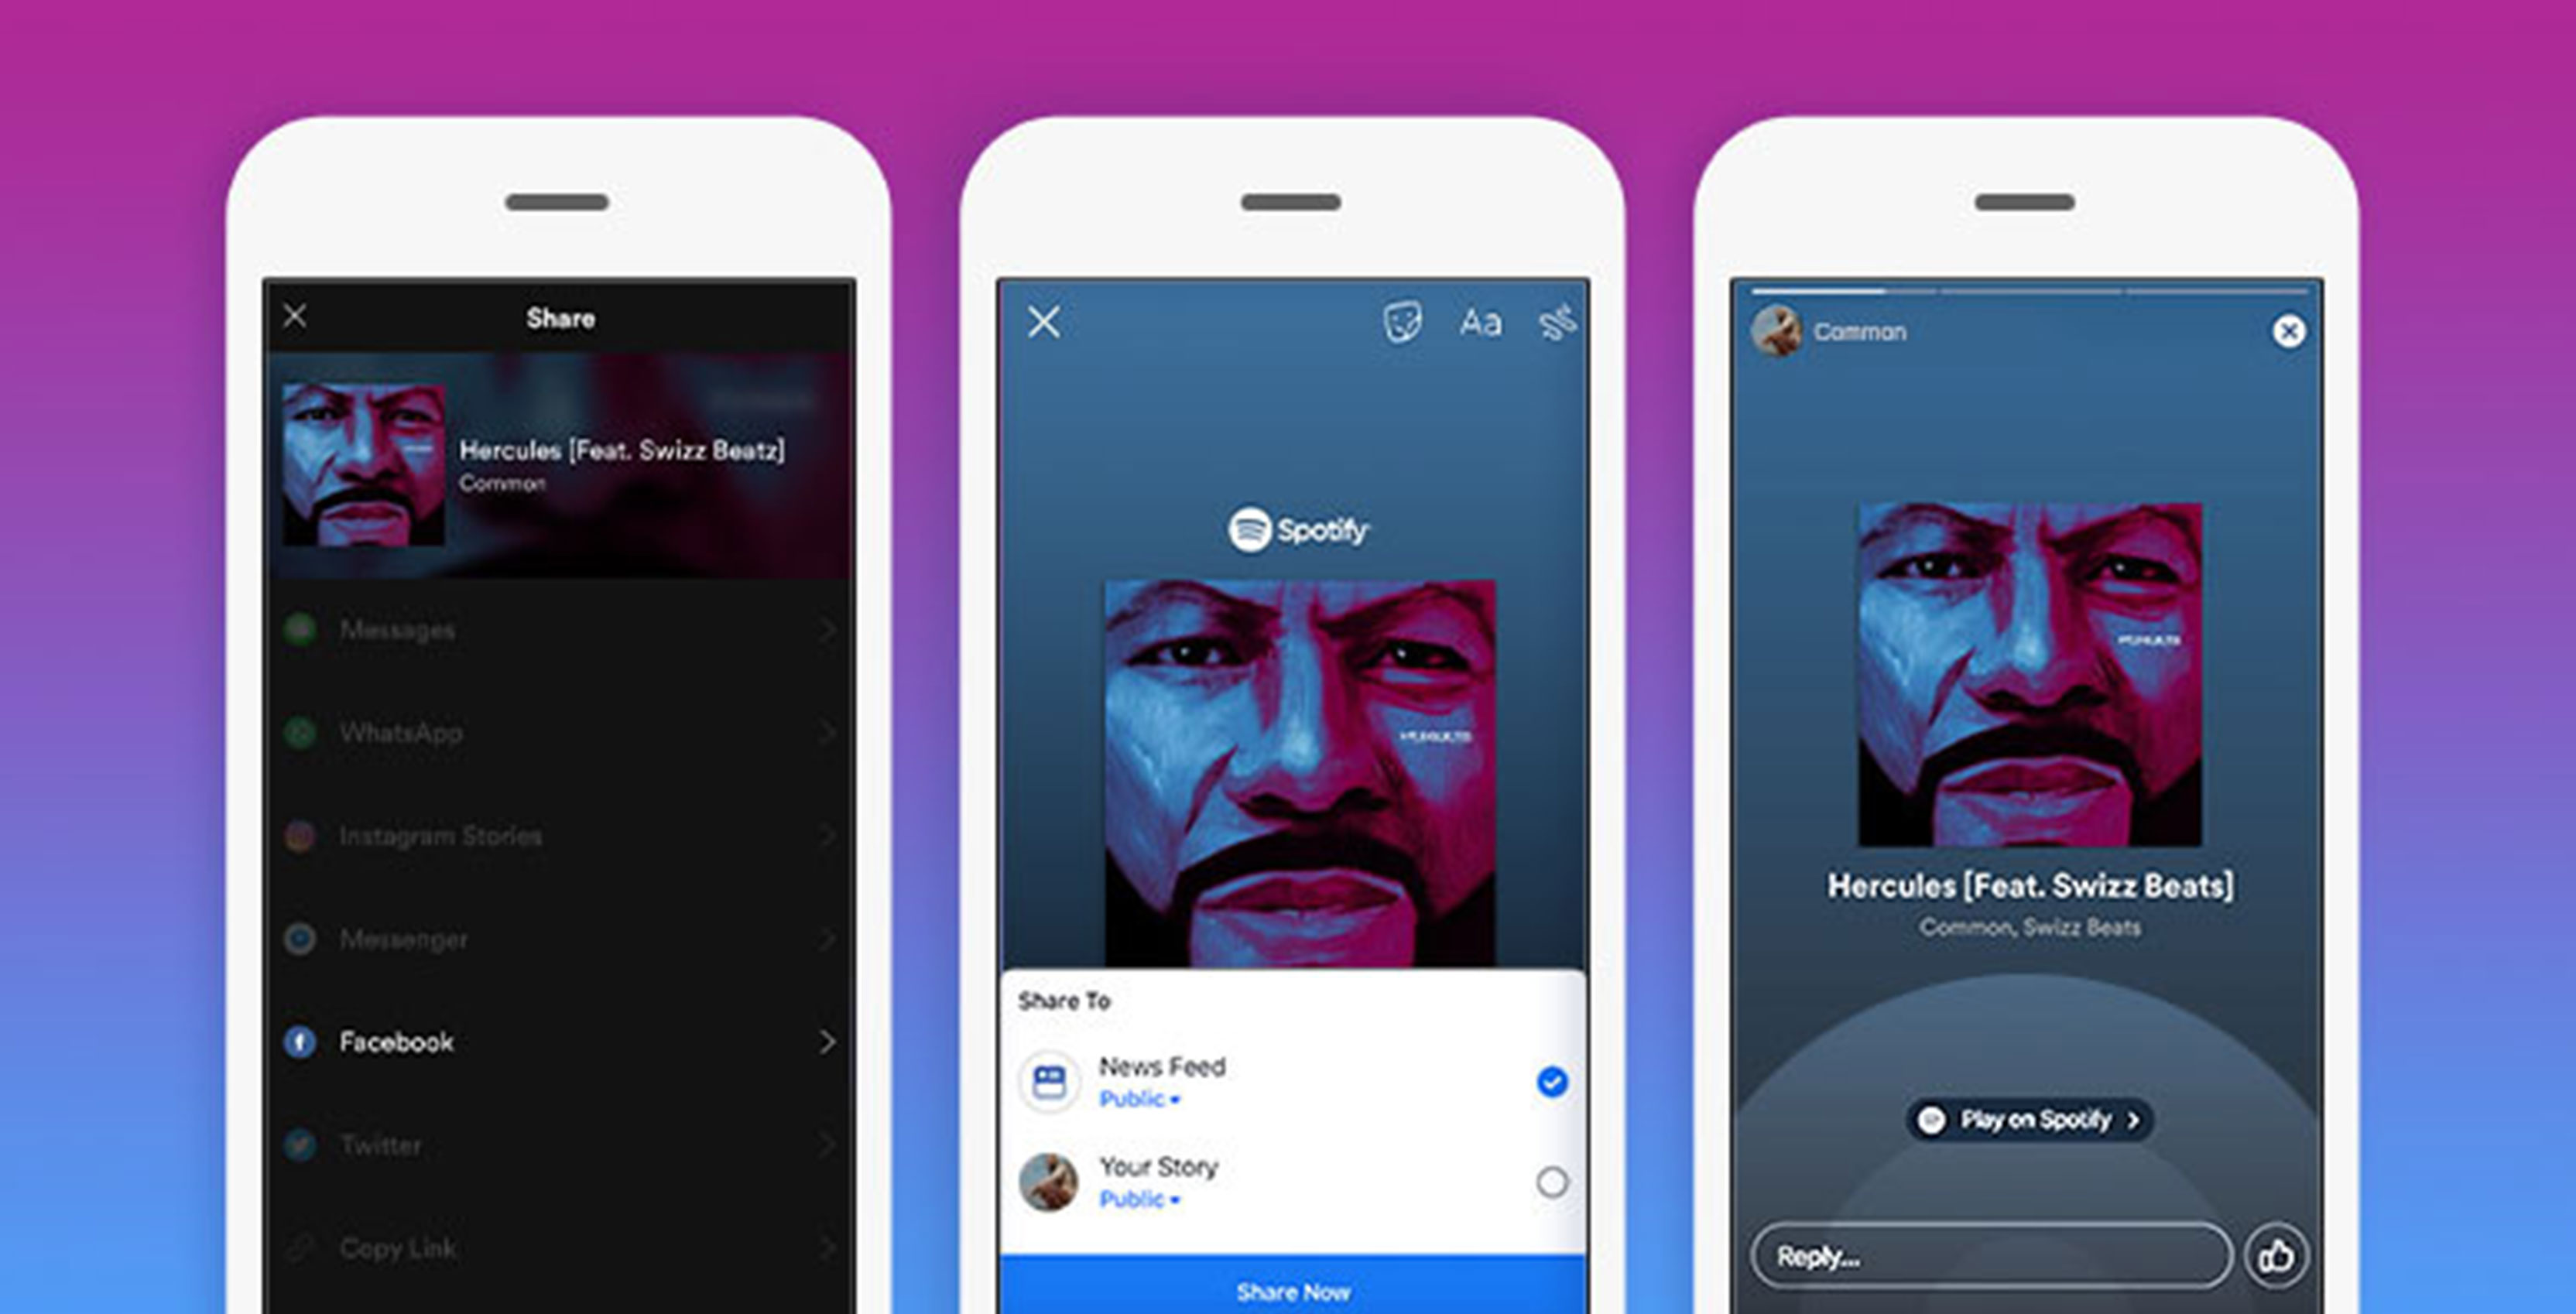 You can now add Spotify songs to your Facebook Story